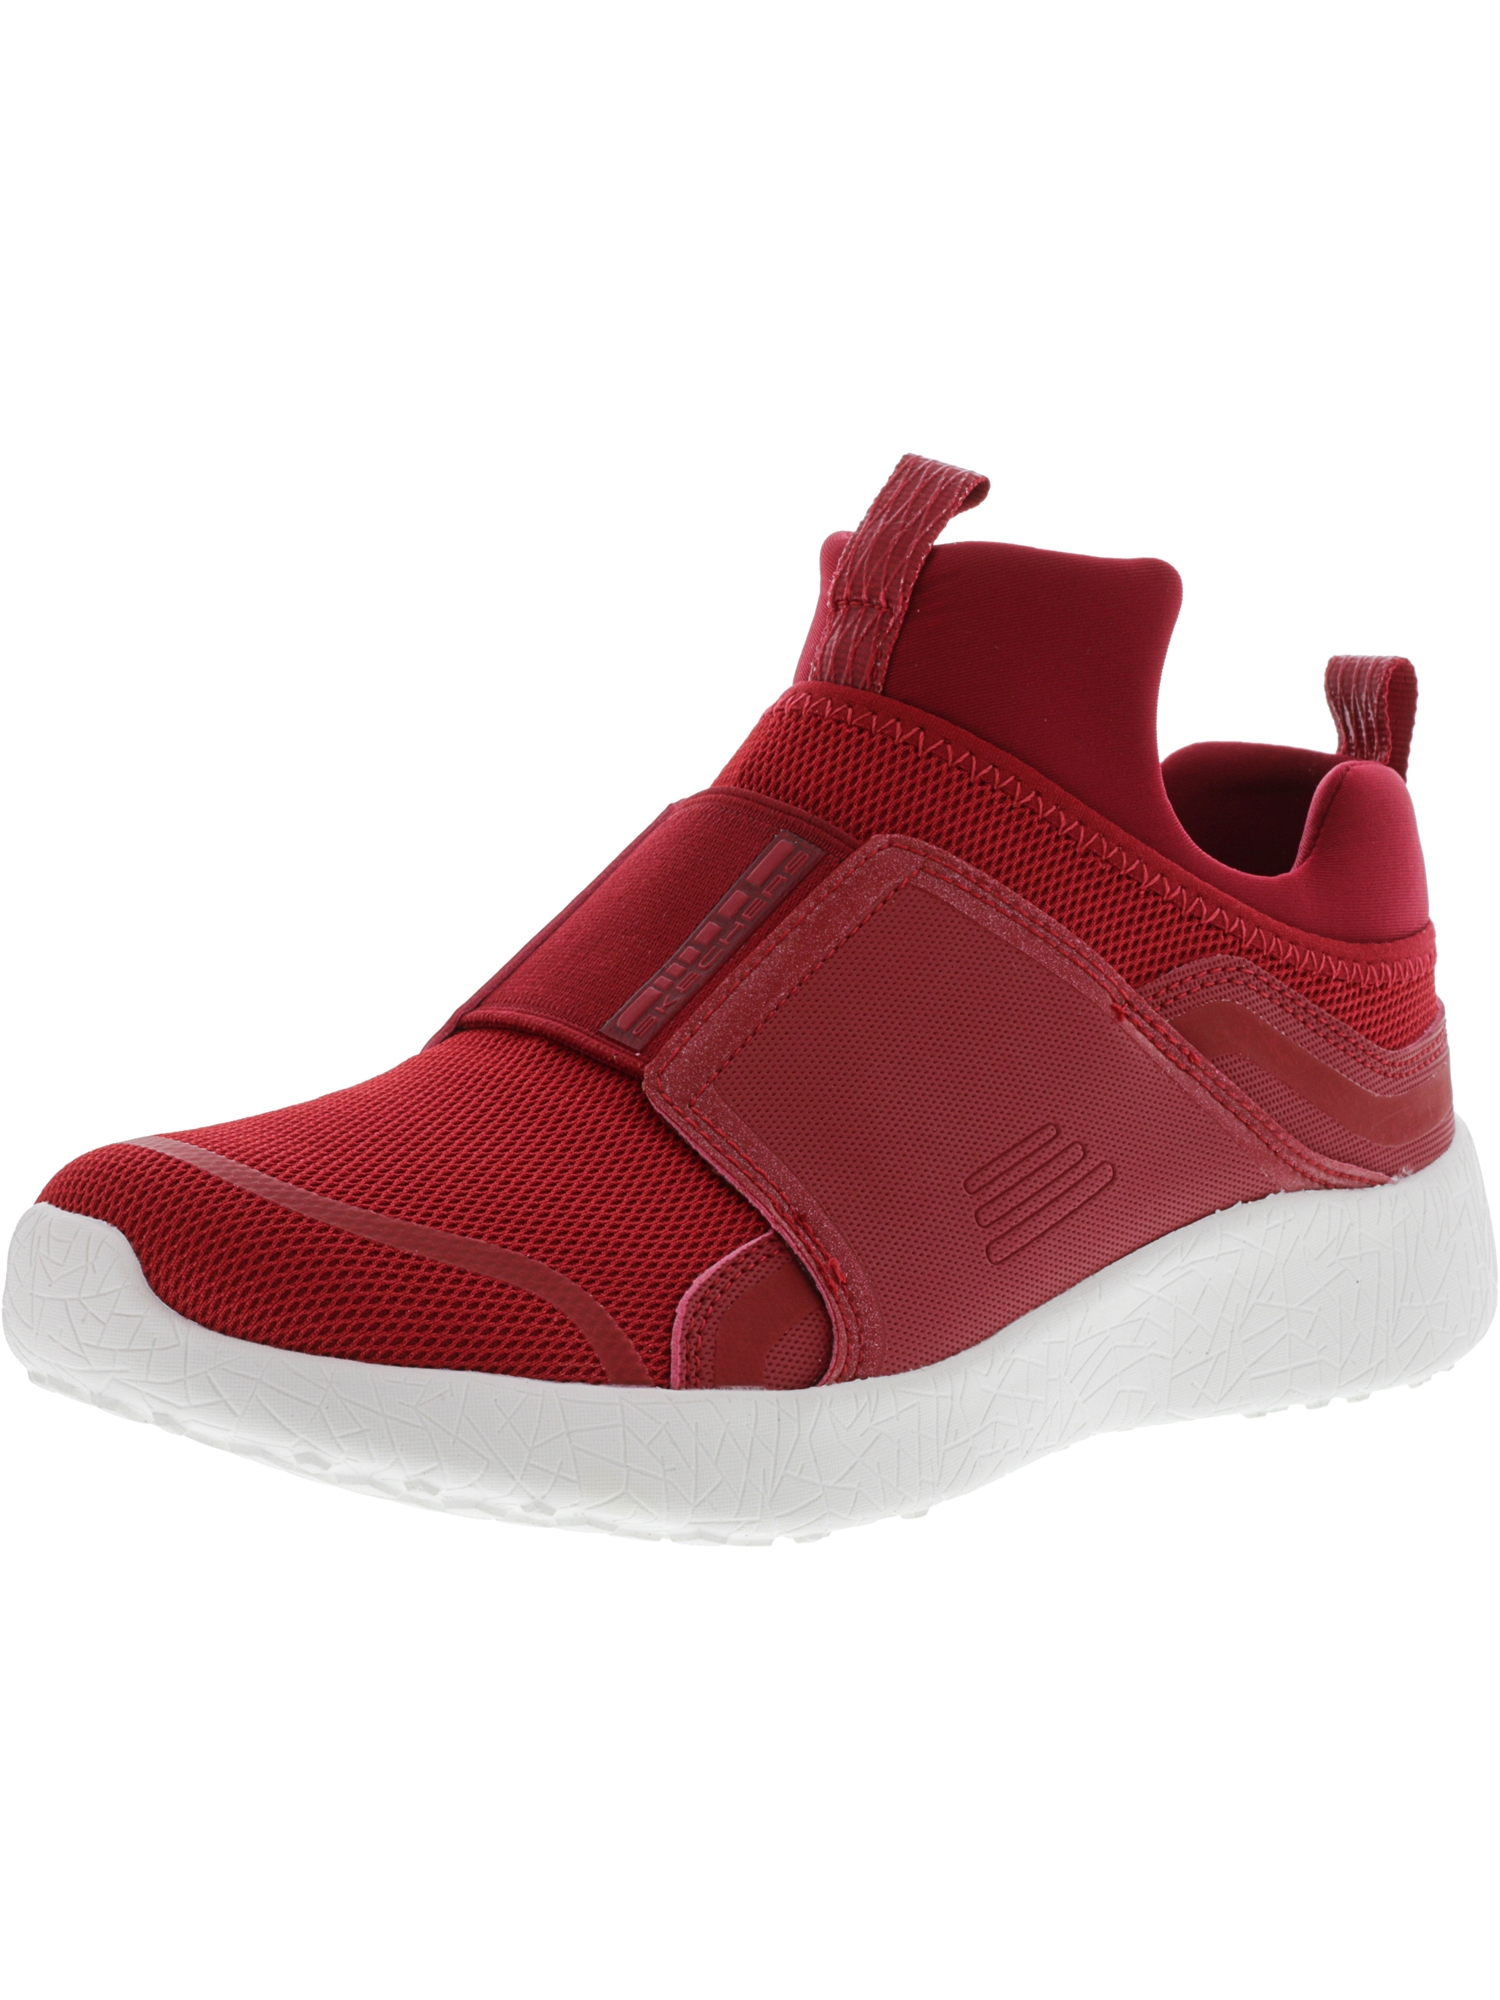 Red Mid-Top Mesh Training Shoes 7.5